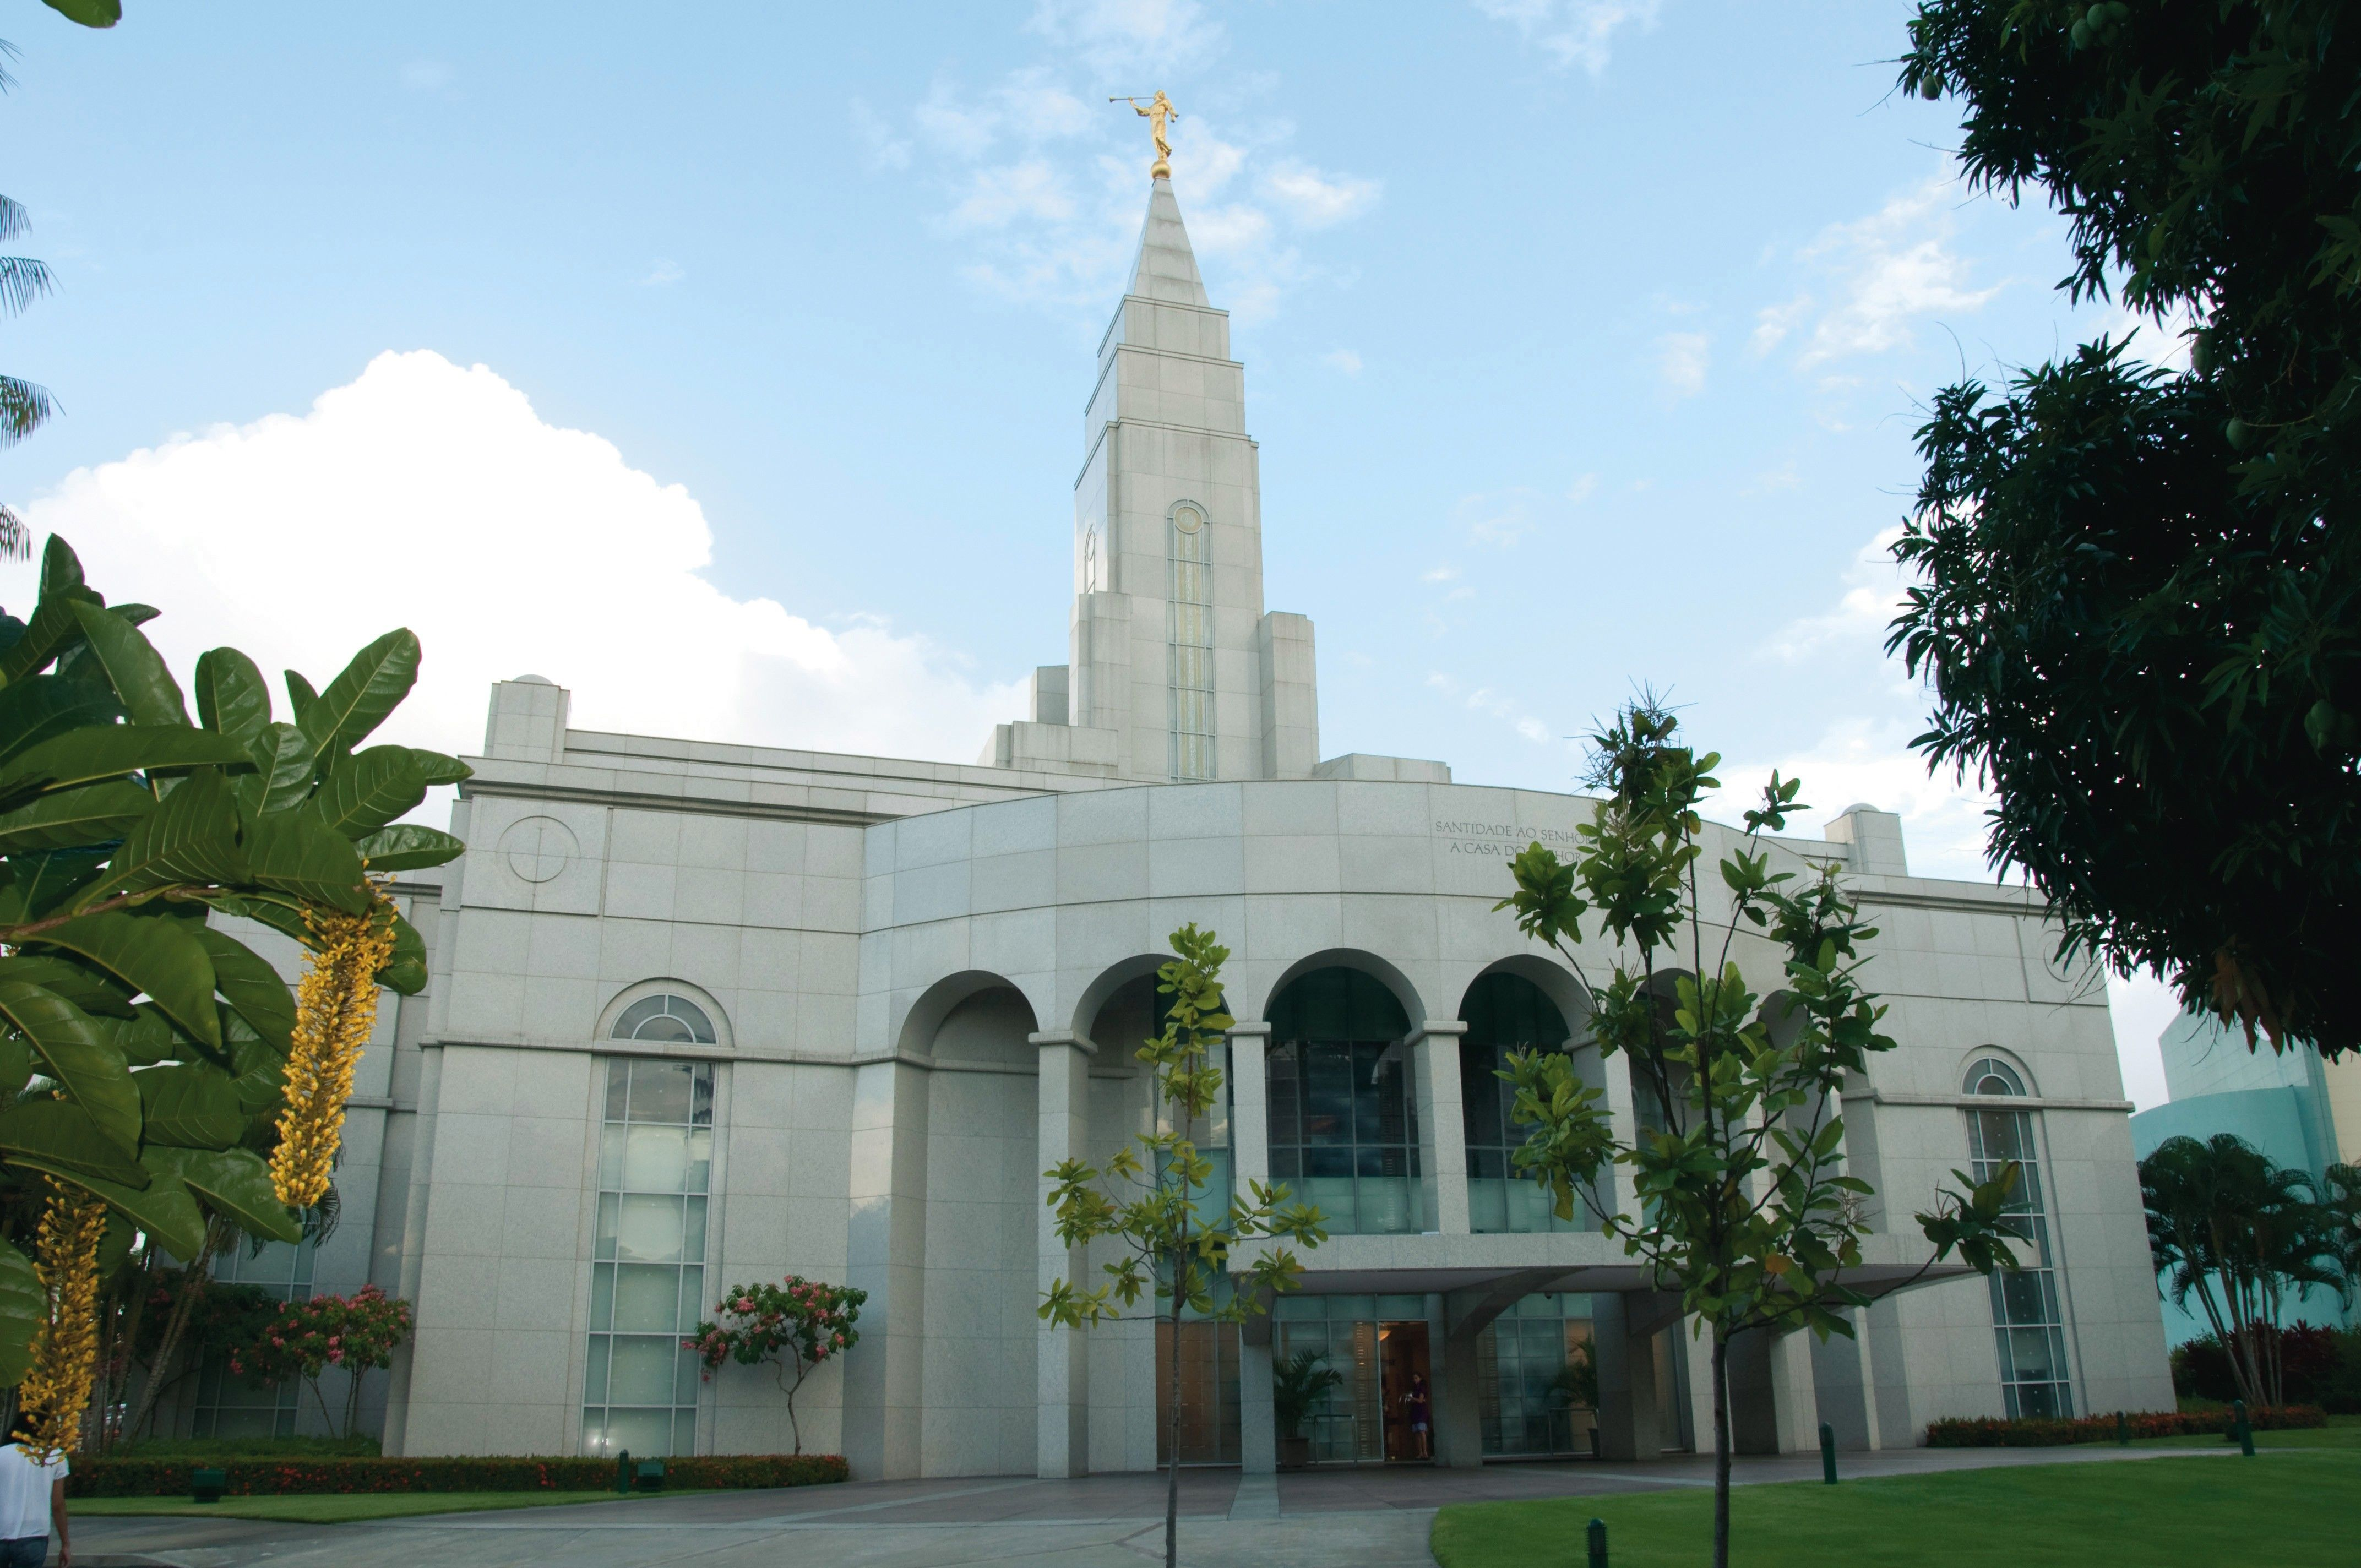 The entire Recife Brazil Temple, including the entrance and scenery.